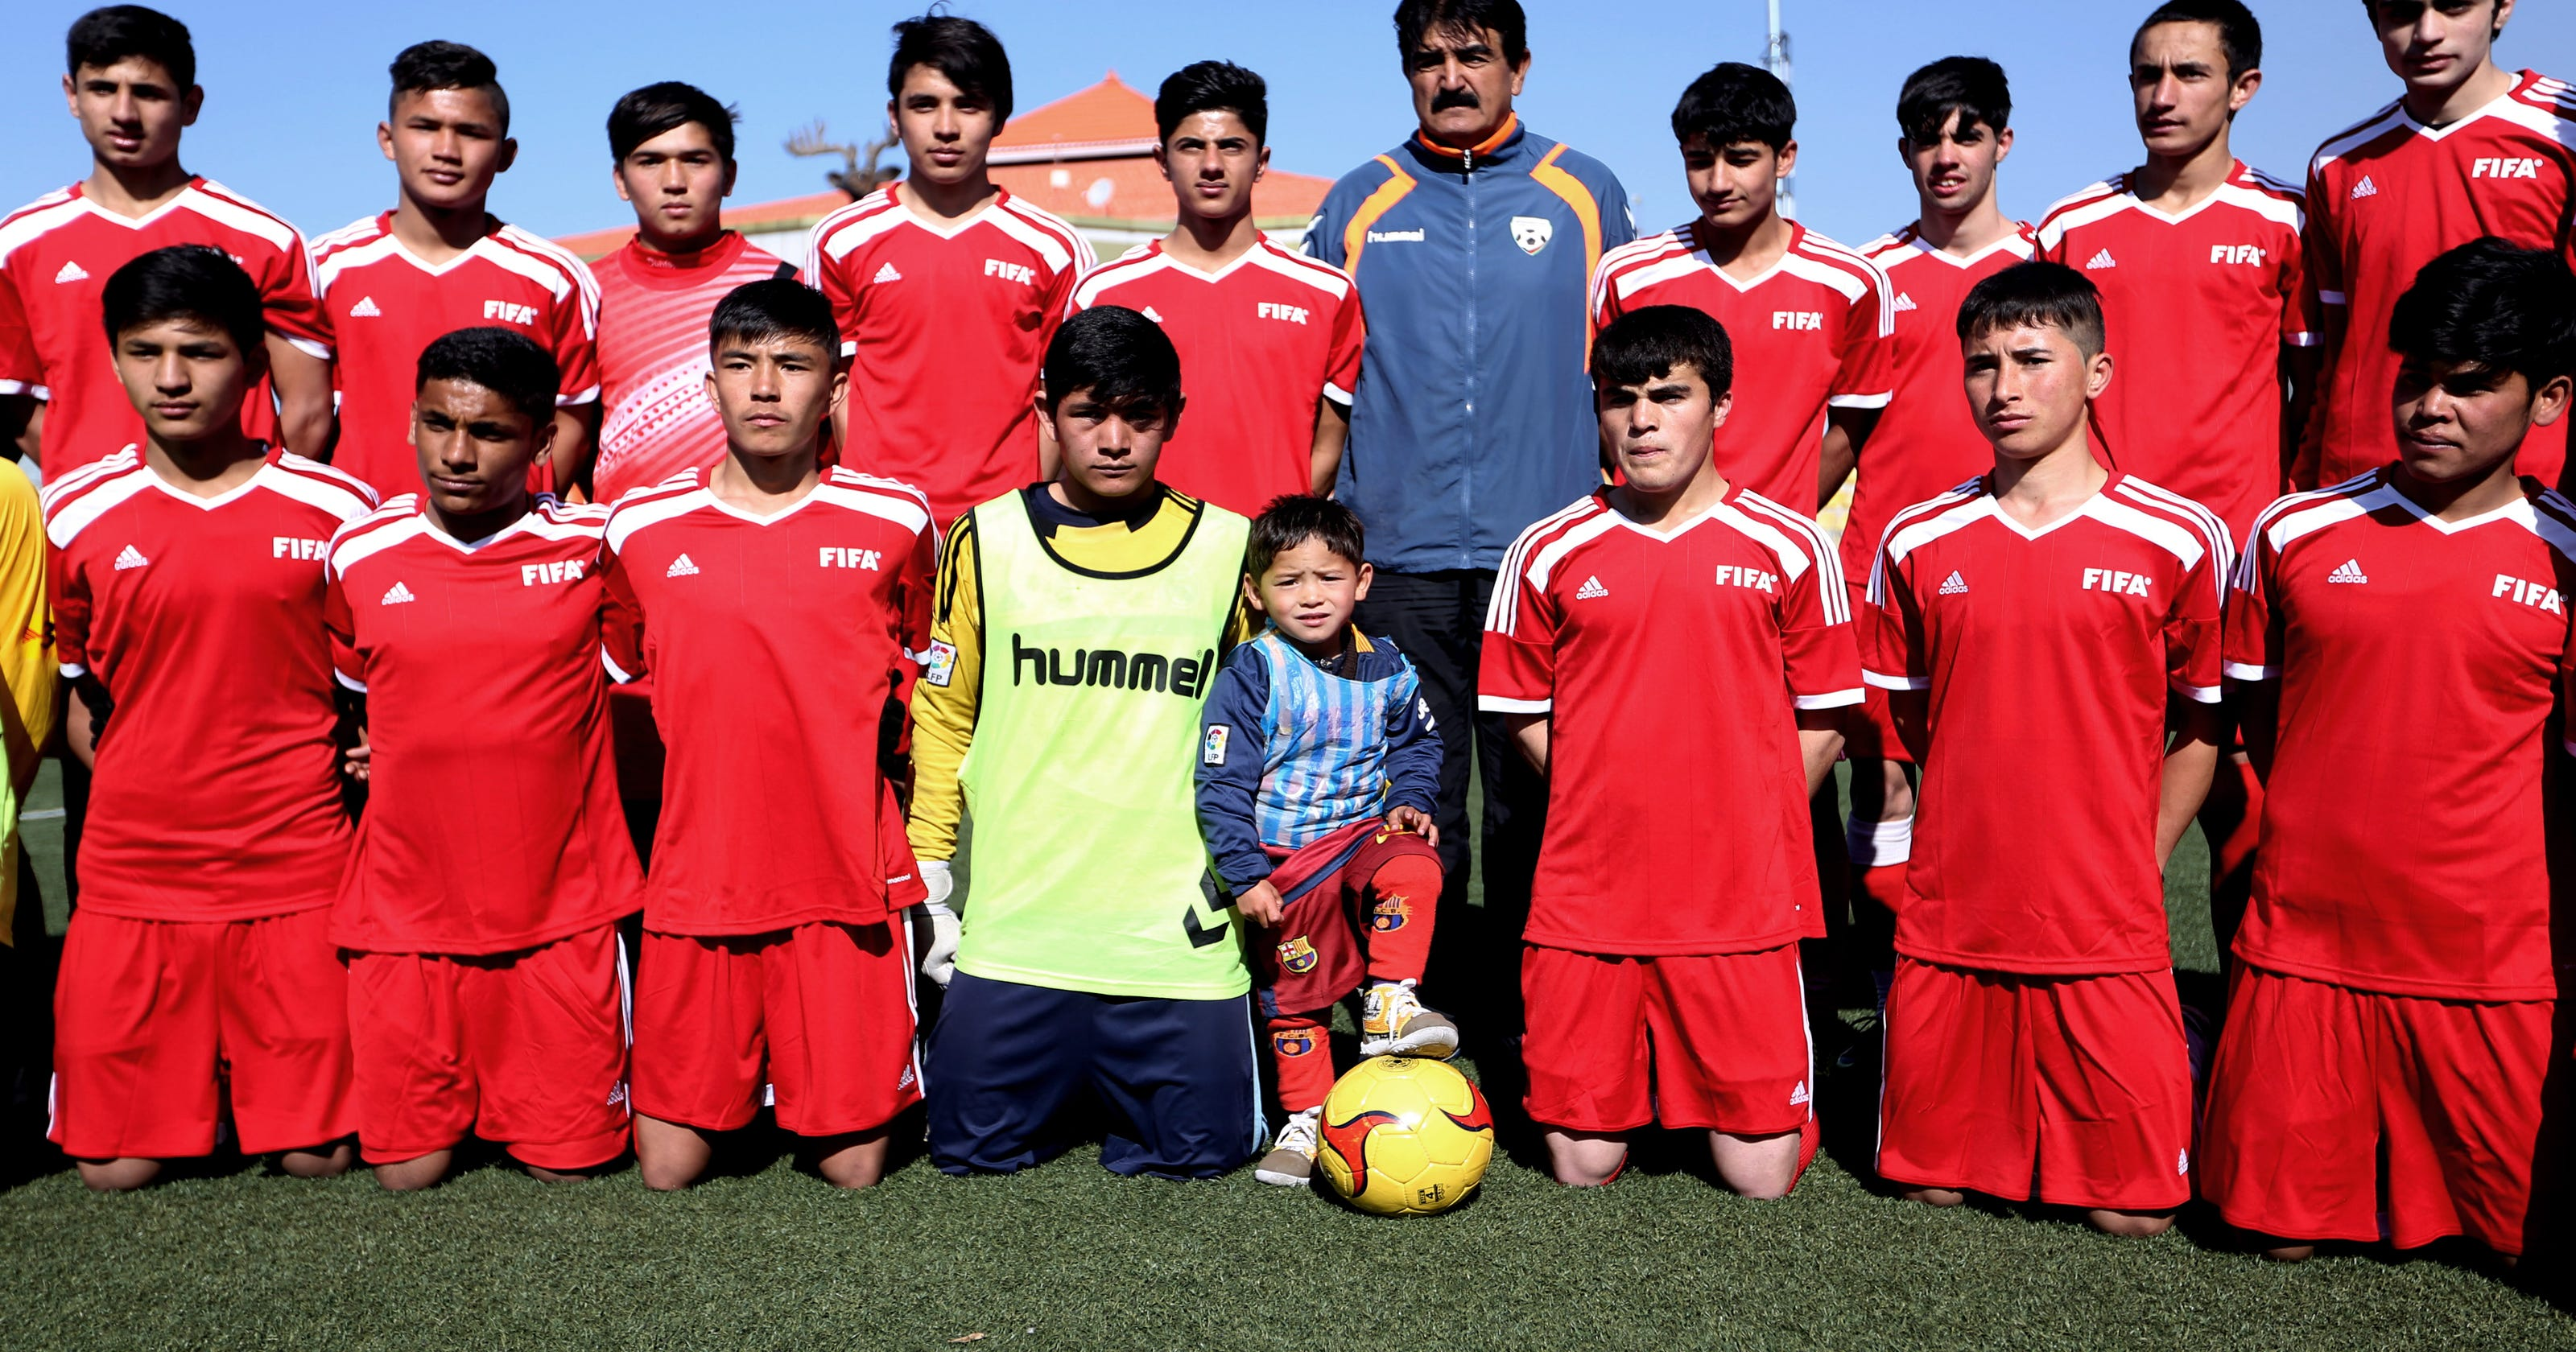 df727fcac 5-year-old Afghan boy could get to meet Lionel Messi